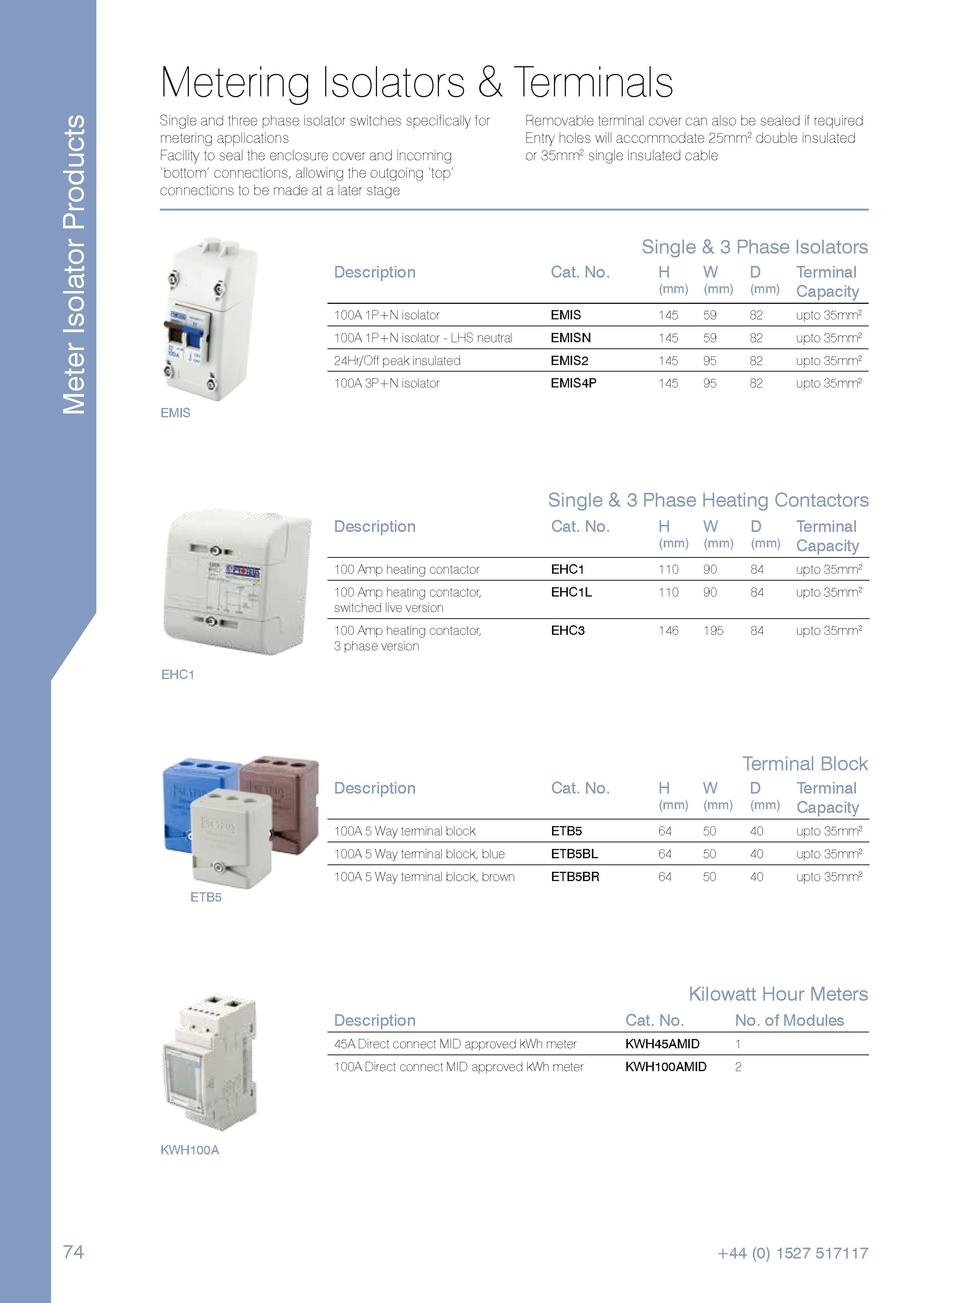 Catalogue Installation Materials Division The Only Option I Have For Coil Splitting With 2pole 5way Switch Meter Isolator Products Metering Isolators Terminals Single And Three Phase Switches Specifically